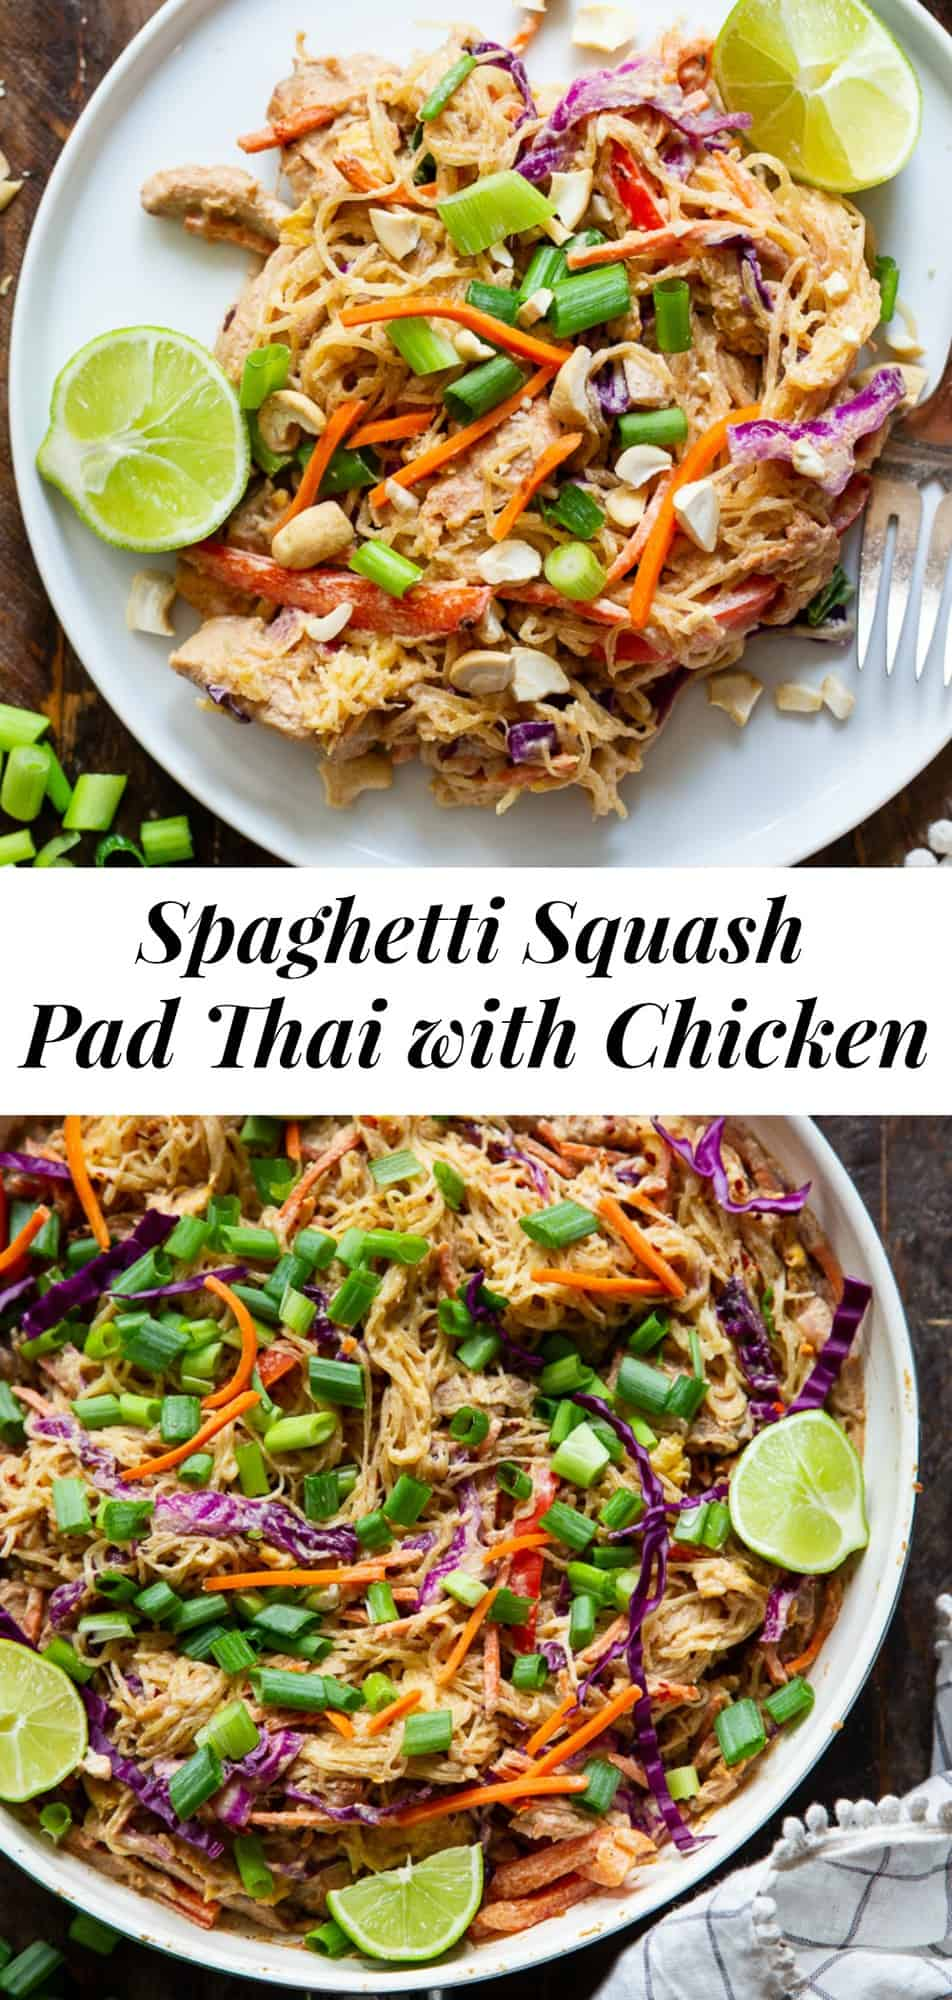 This healthier spaghetti squash pad thai is easy to make at home and packed with veggies, chicken, and a flavorful sauce.  It comes together in 30 minutes and the leftovers are perfect for lunches the next day!  Paleo, Whole30, family friendly and low carb. #paleo #whole30 #lowcarb #cleaneating